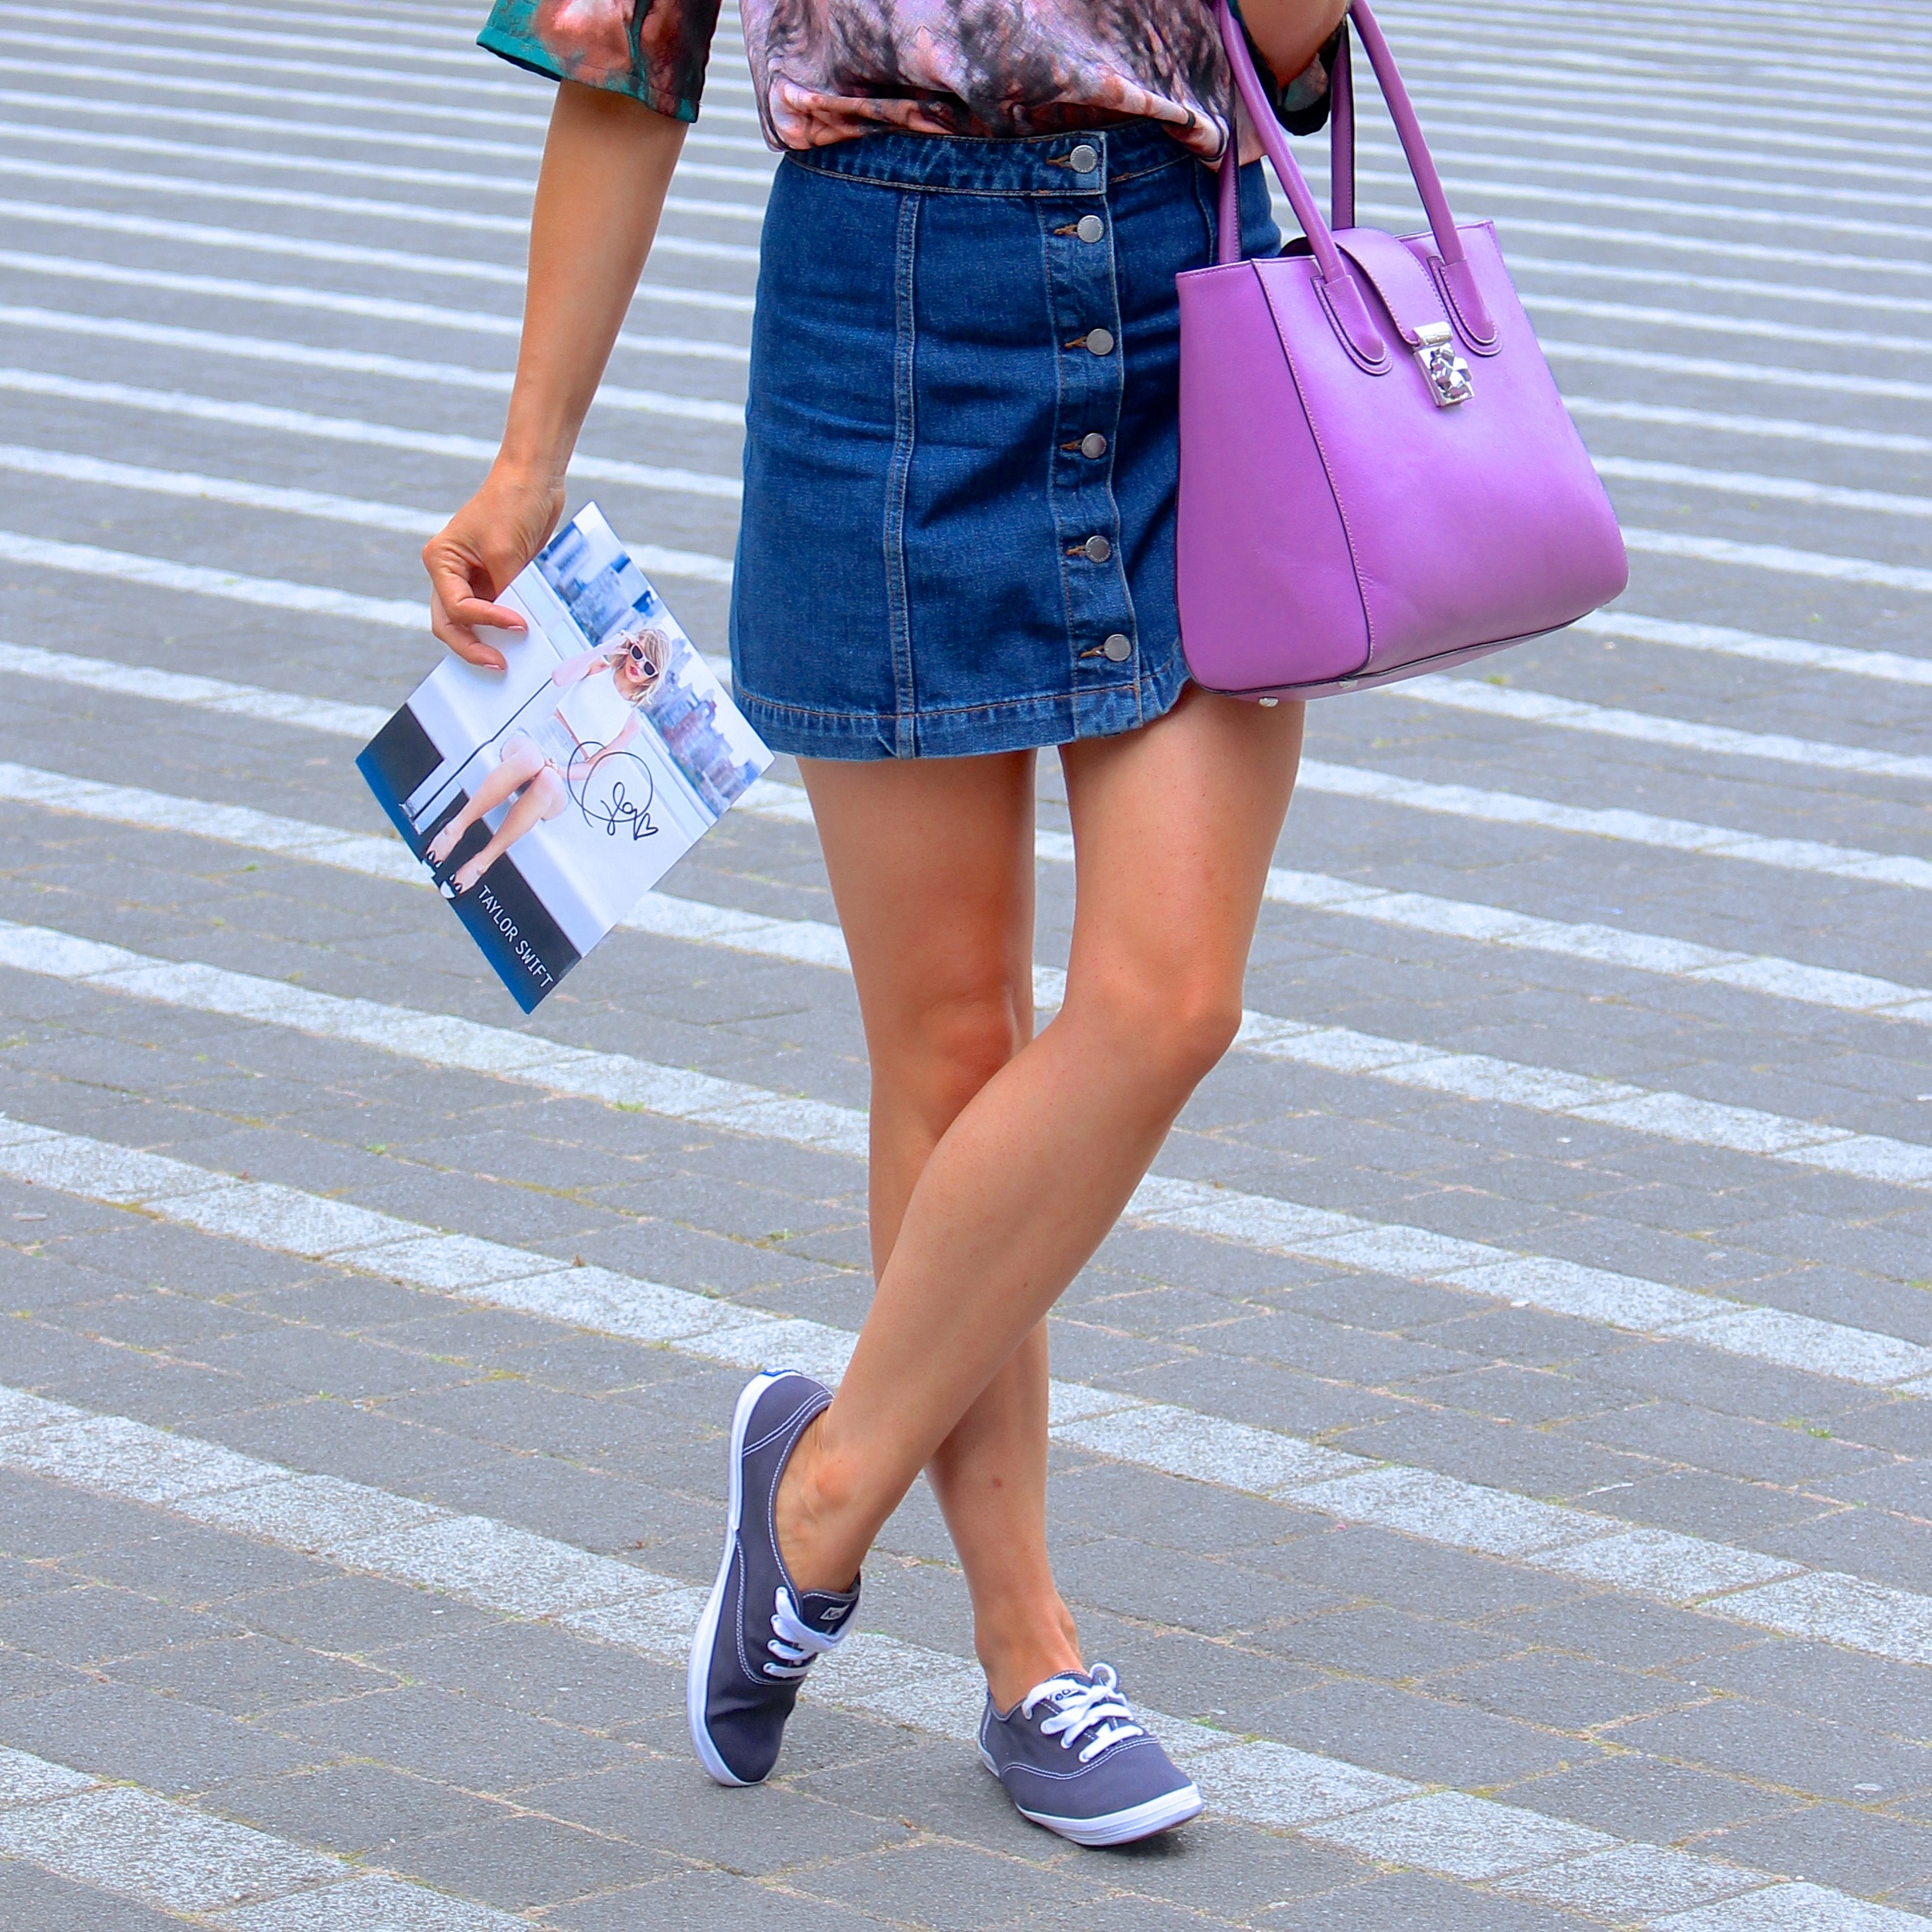 Taylor Swift with Keds